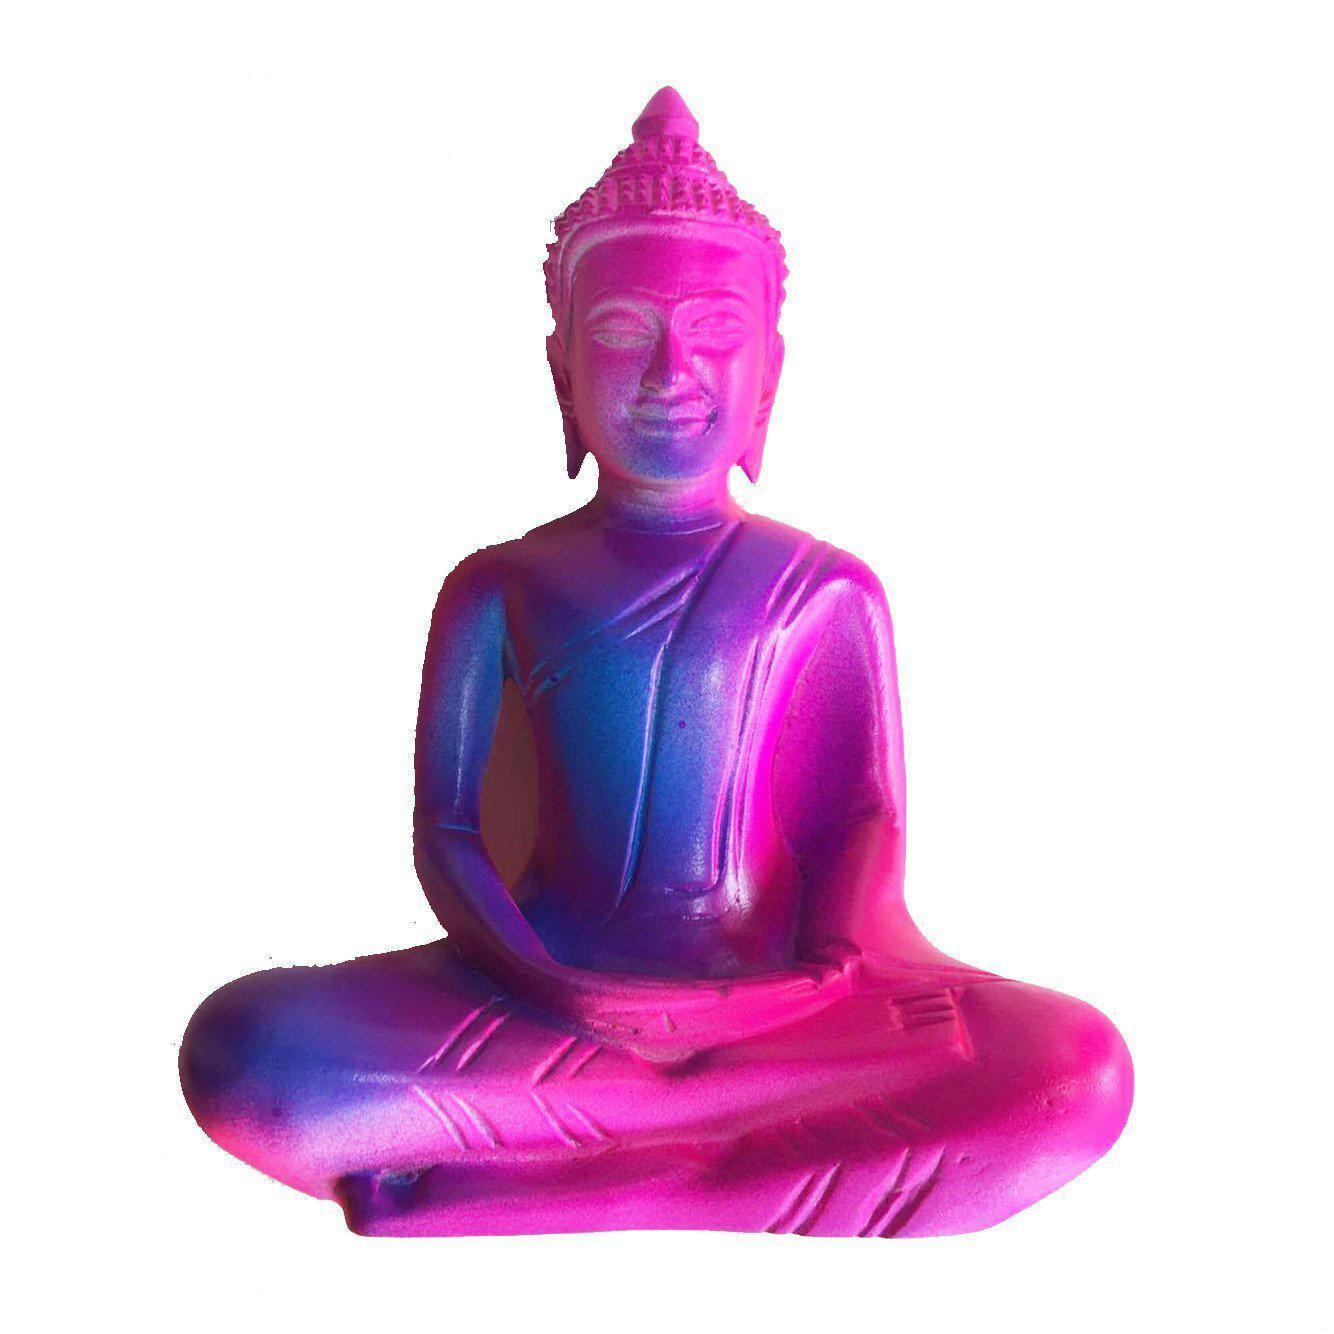 Fluro Mango Wood Seated Buddha in Meditation Pose